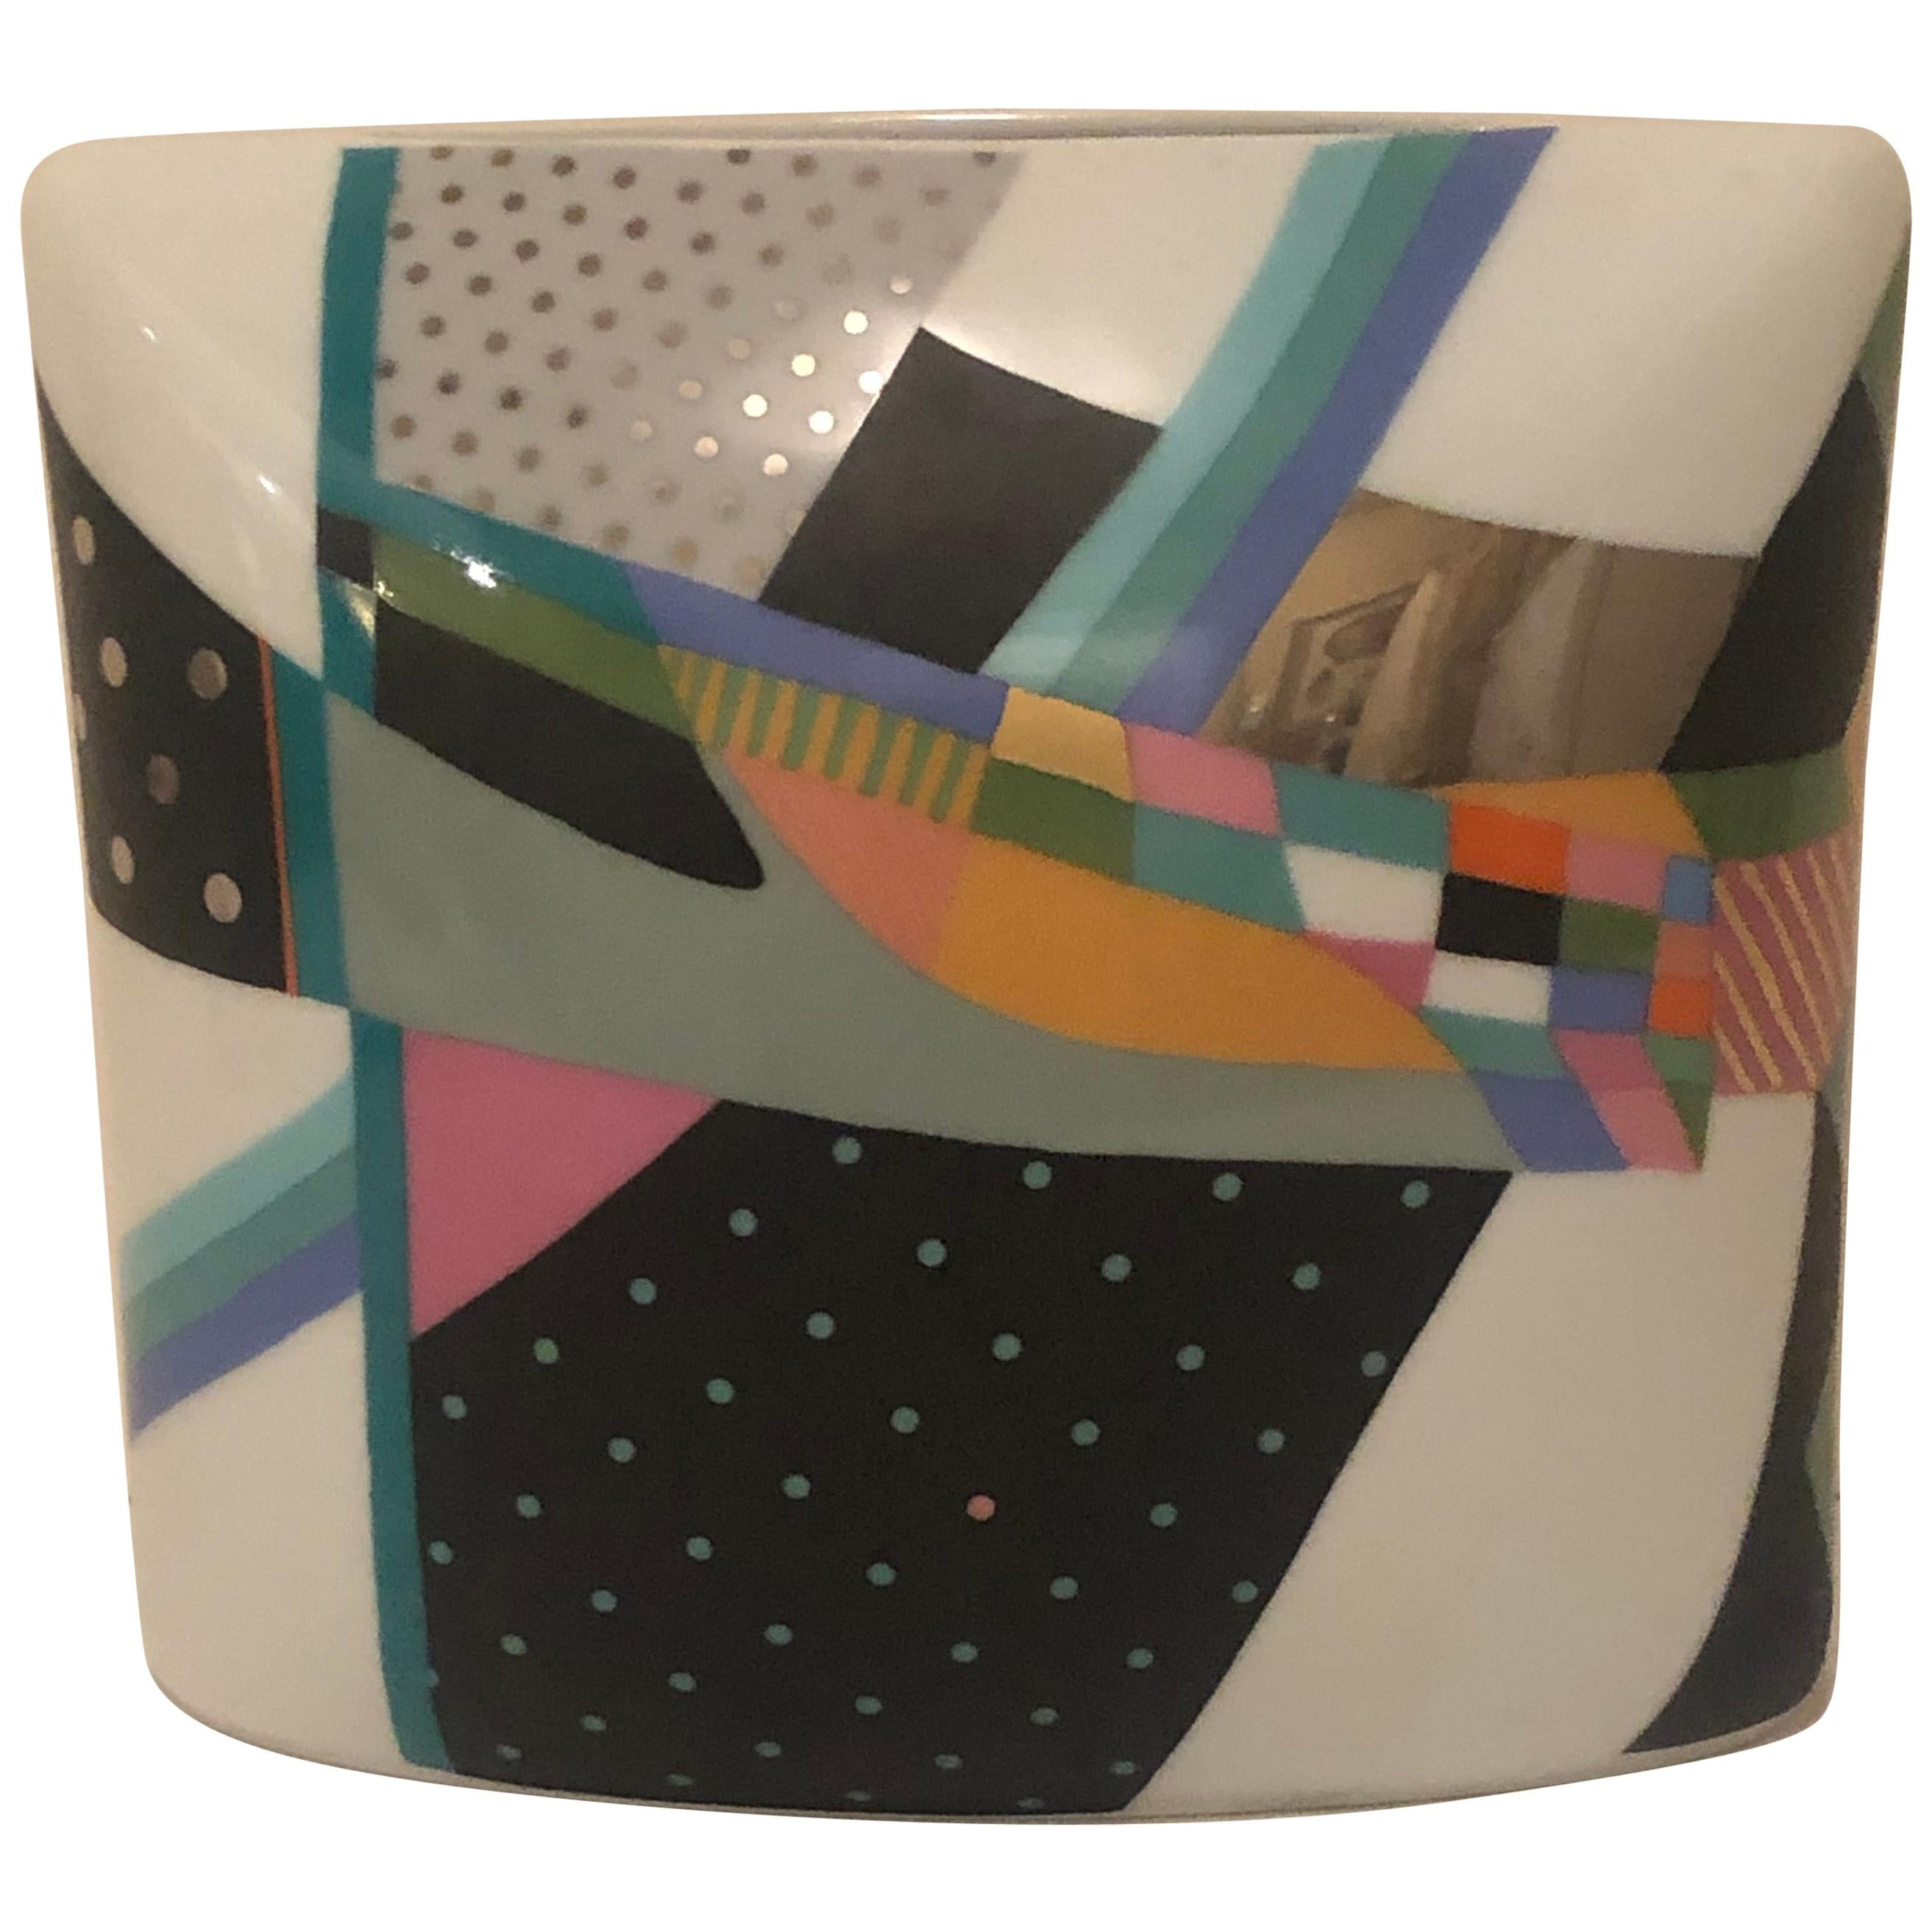 Rosenthal Art Deco Artist Signed Vase with Fabulous Abstract Colorful Painting